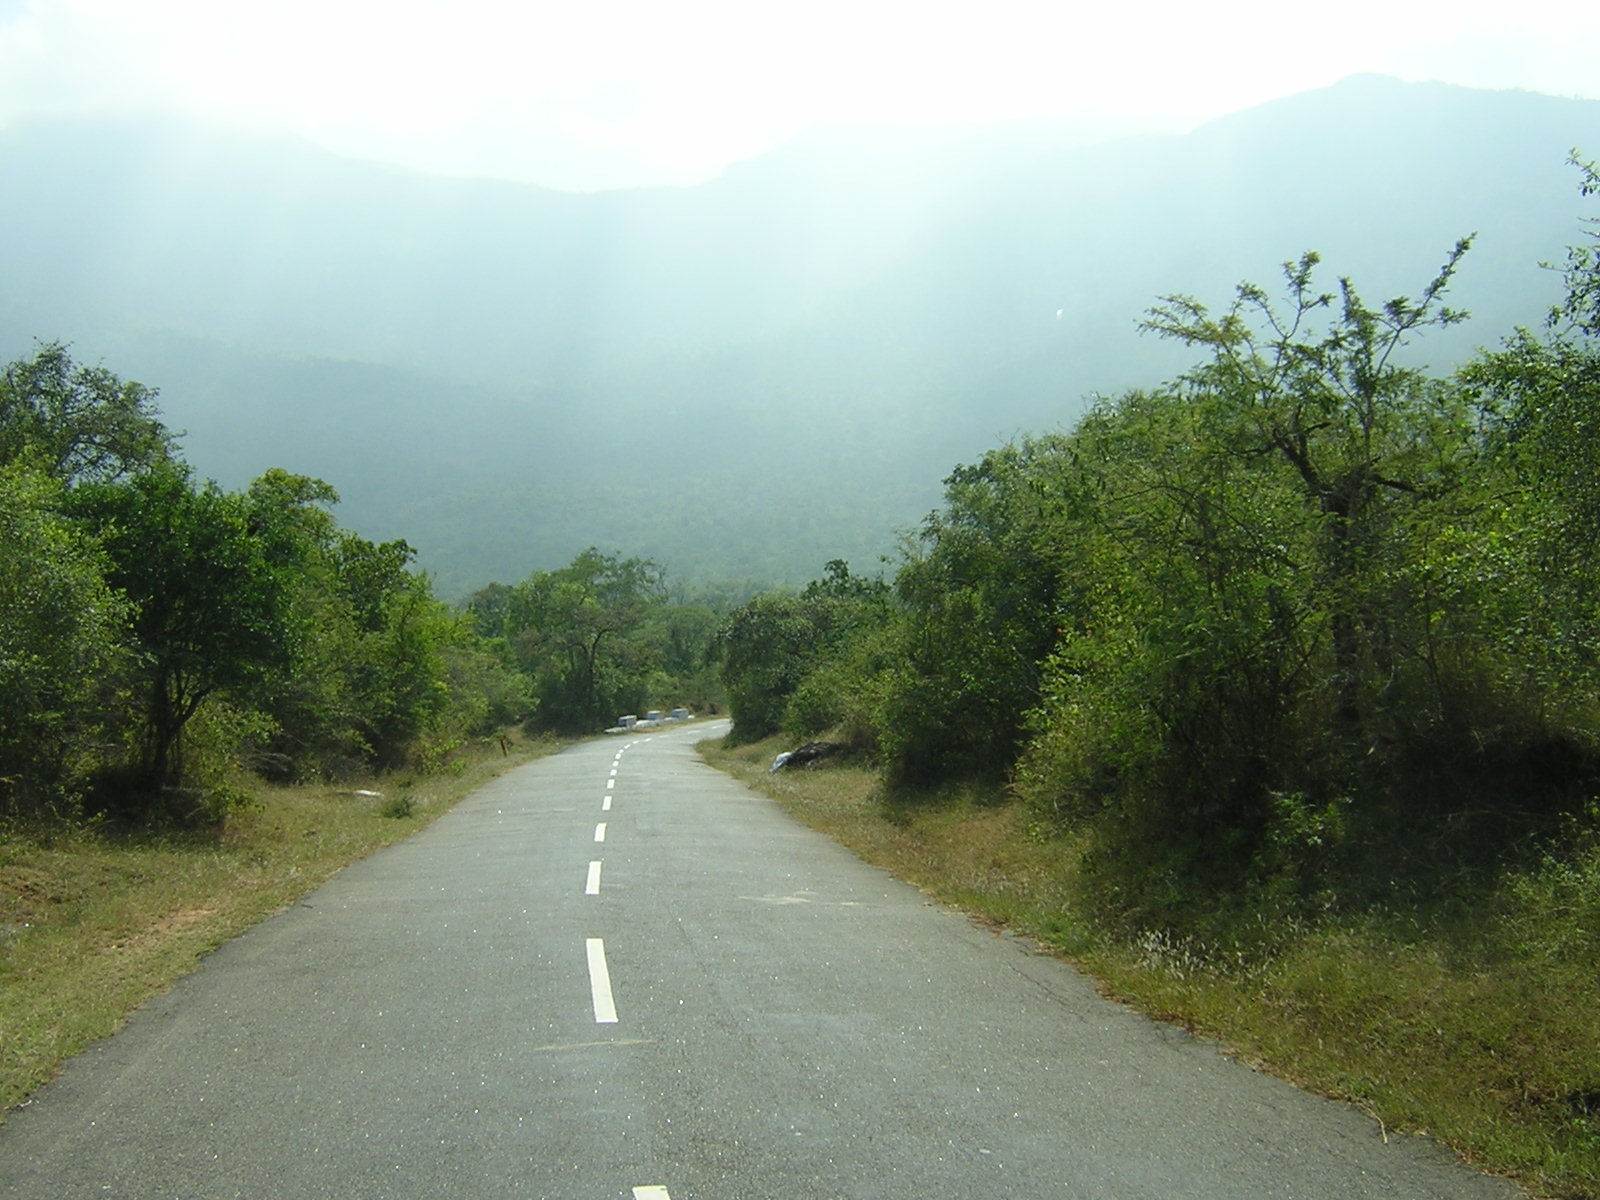 Masinagudi route between Ooty and Bandipur